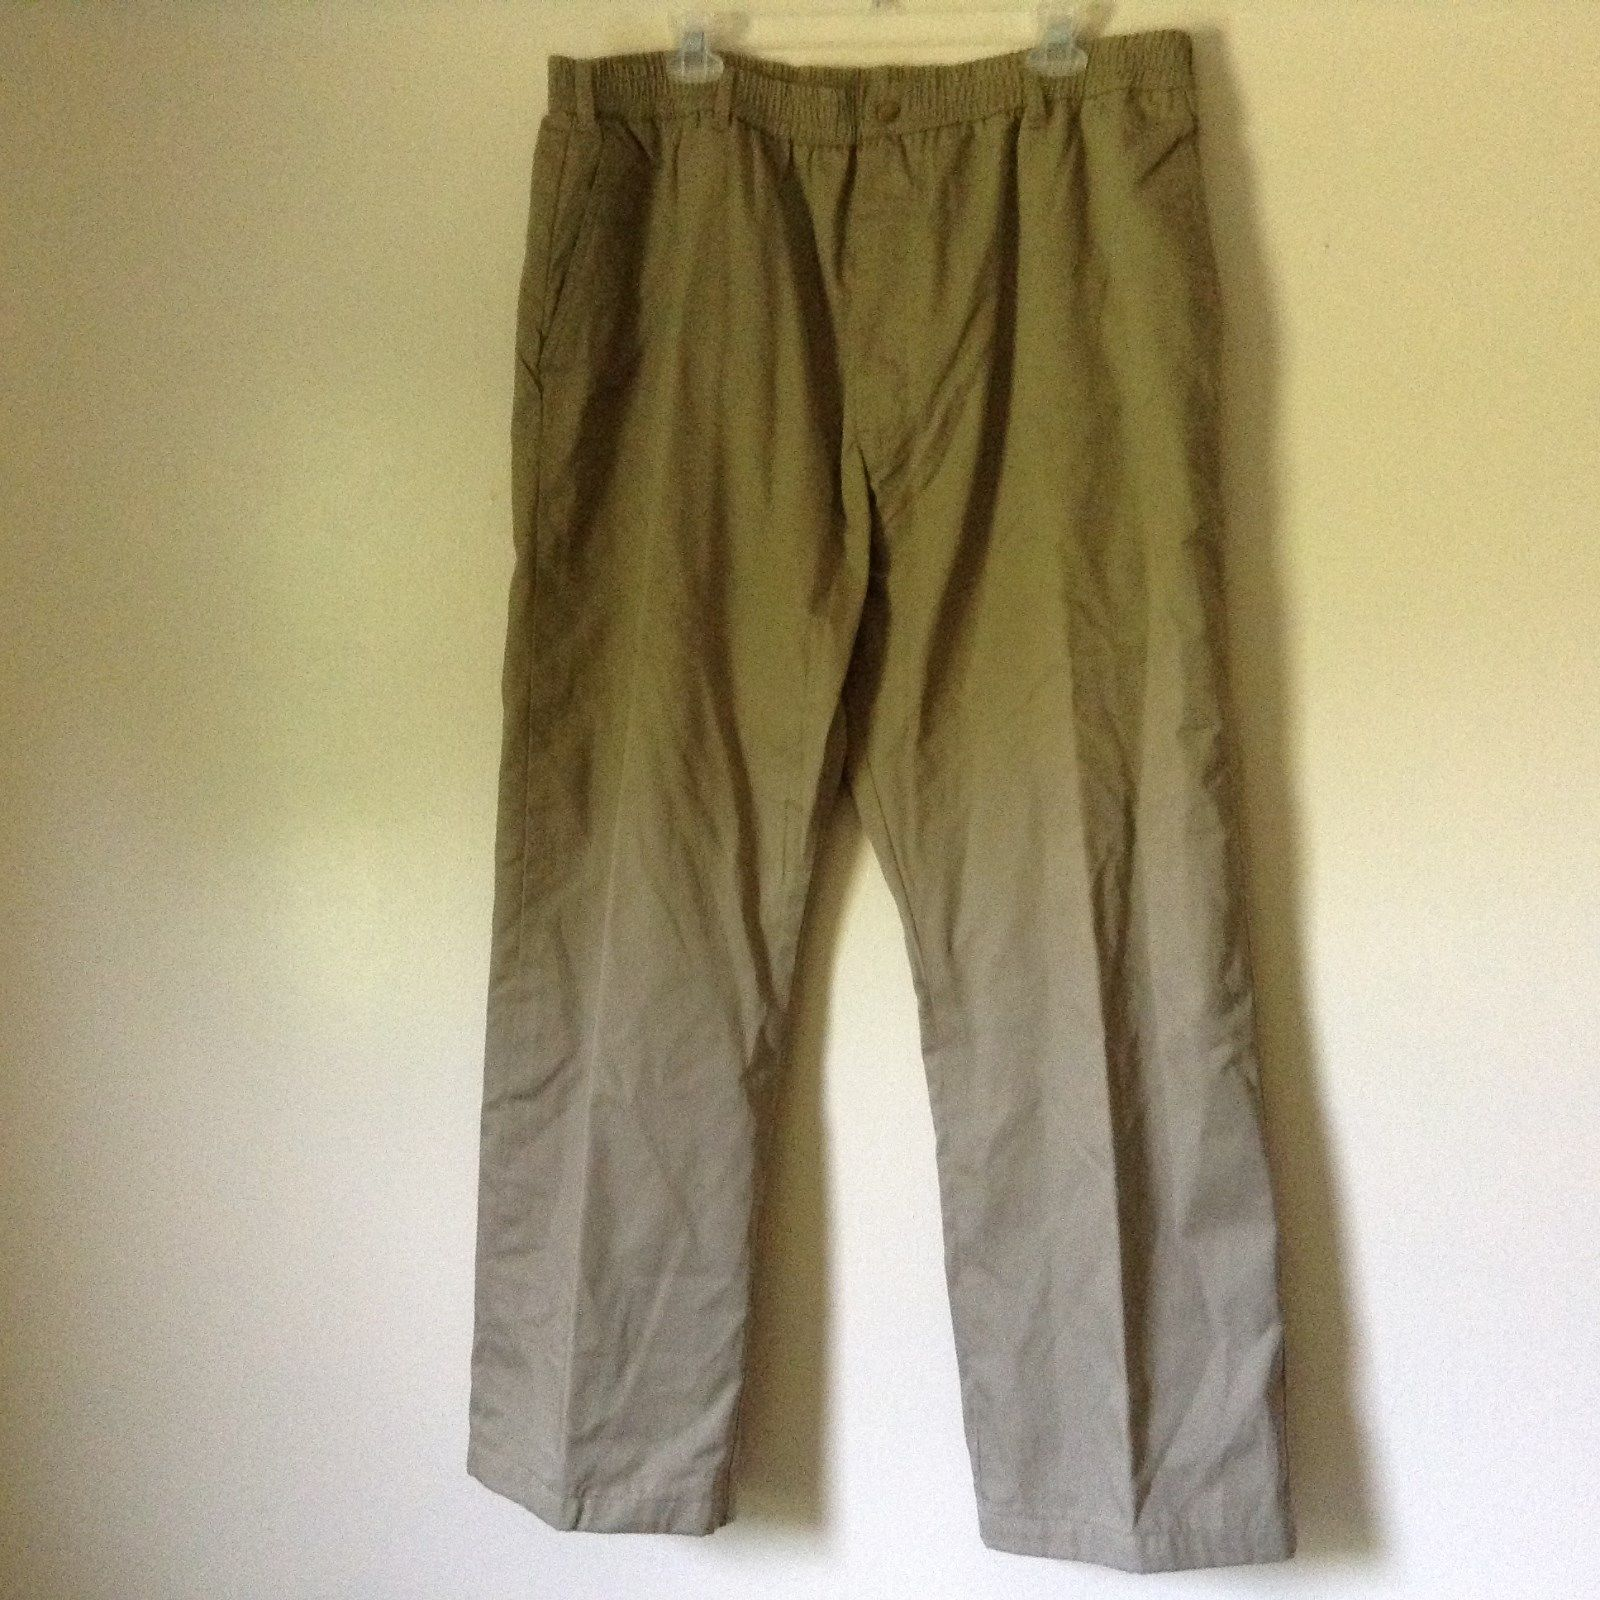 Habands Ice House Flannels Light Brown Tan Pants Size 42M Elastic Waistband